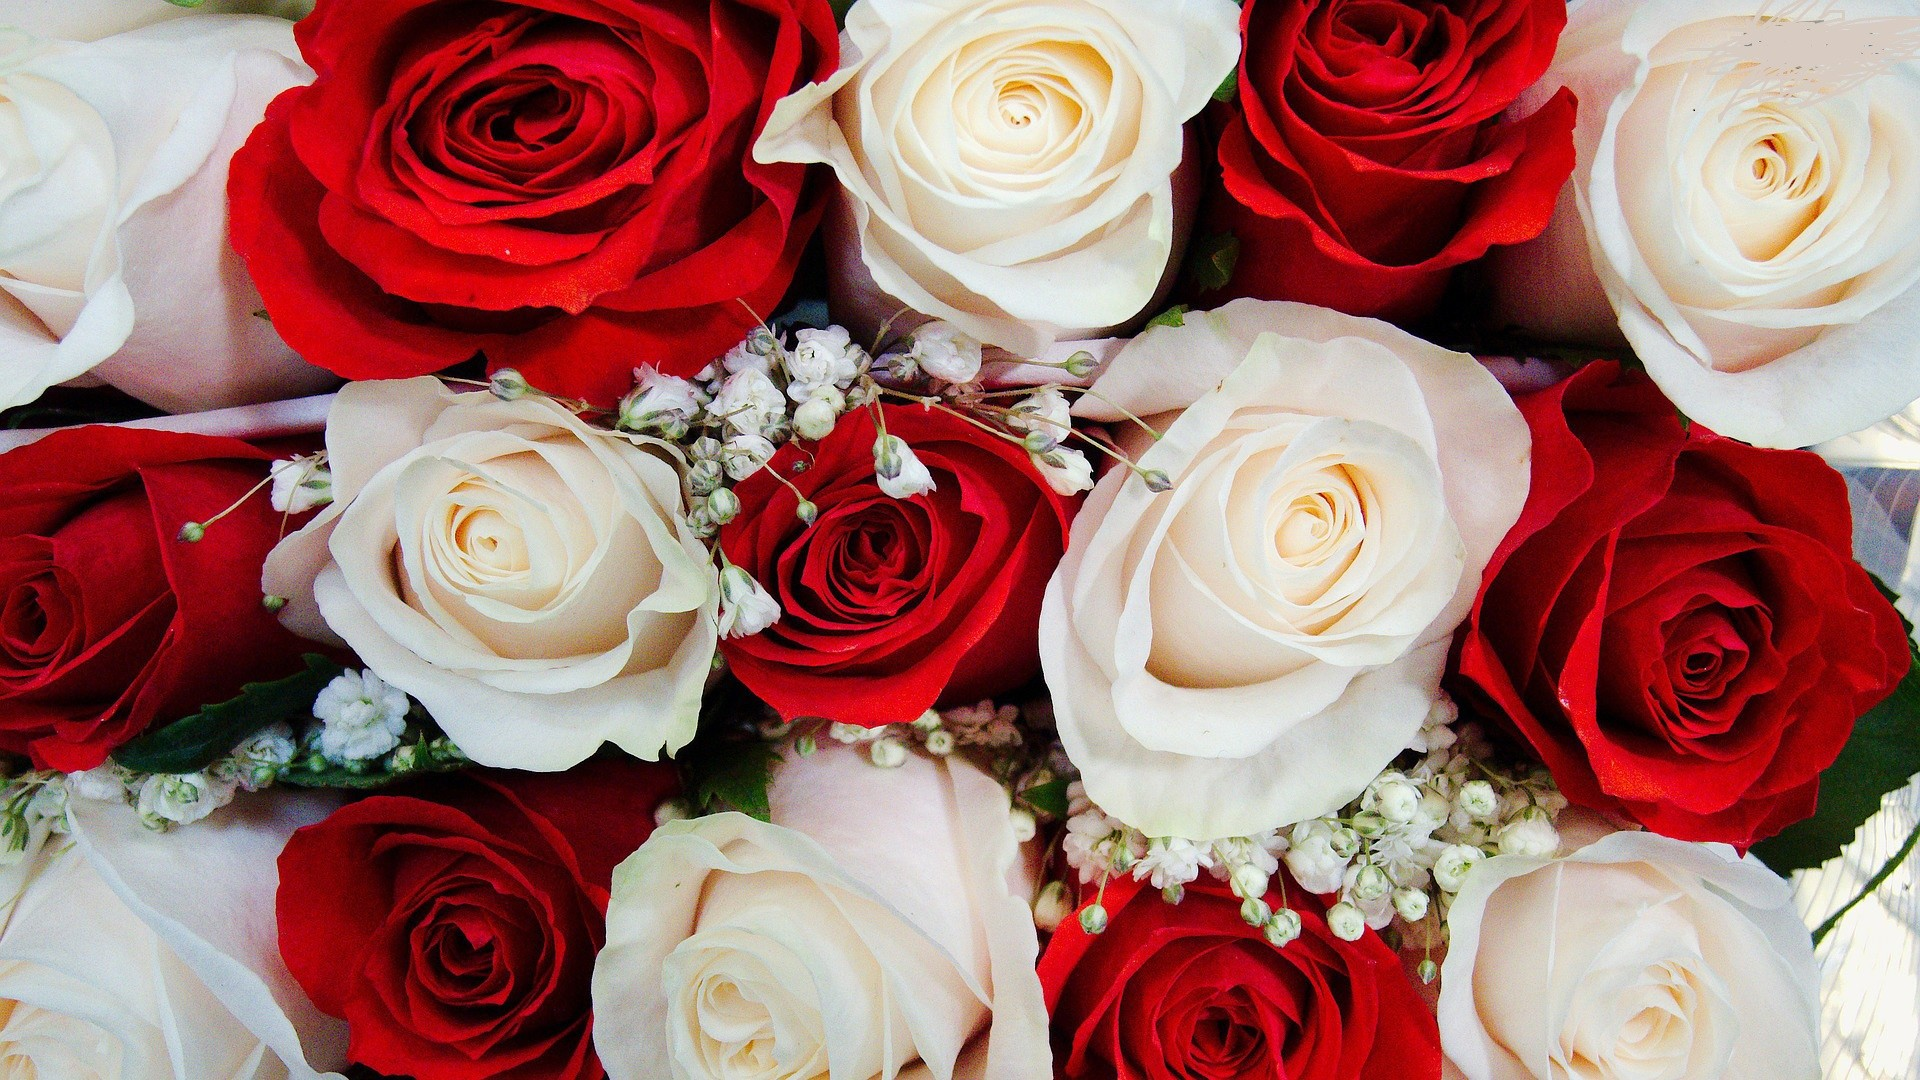 1920x1080 amazing-red-white-roses-free-wallpapers-hd